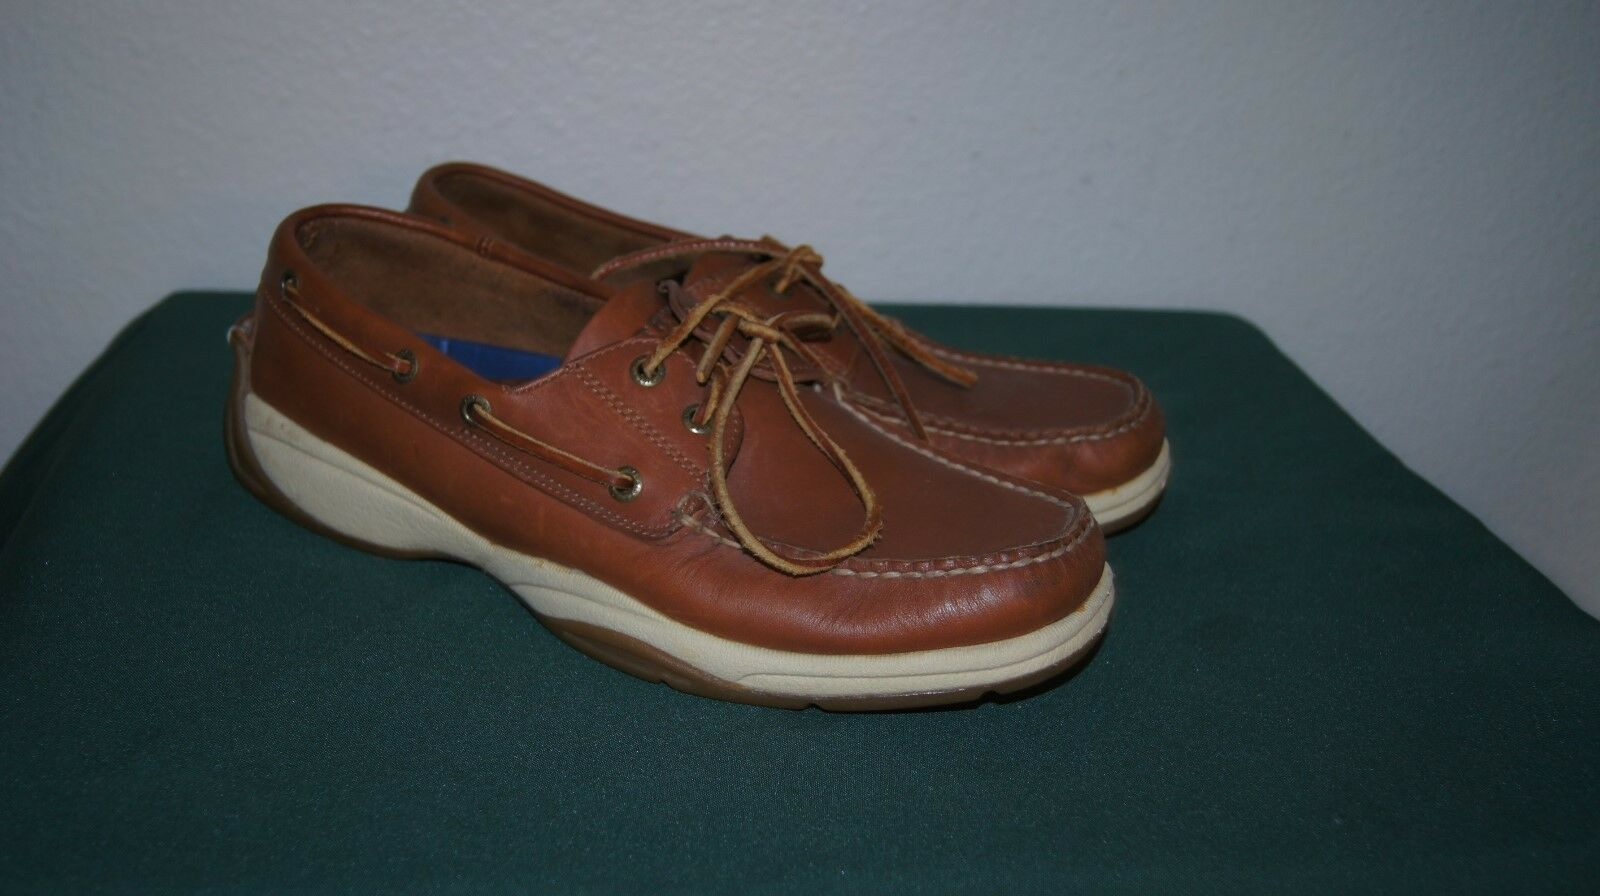 SPERRY TOPSIDERS 9.5 M  WATERPROOF BOAT SHOES 9.5 SPERRY SHOES 9.5 BOAT SHOES